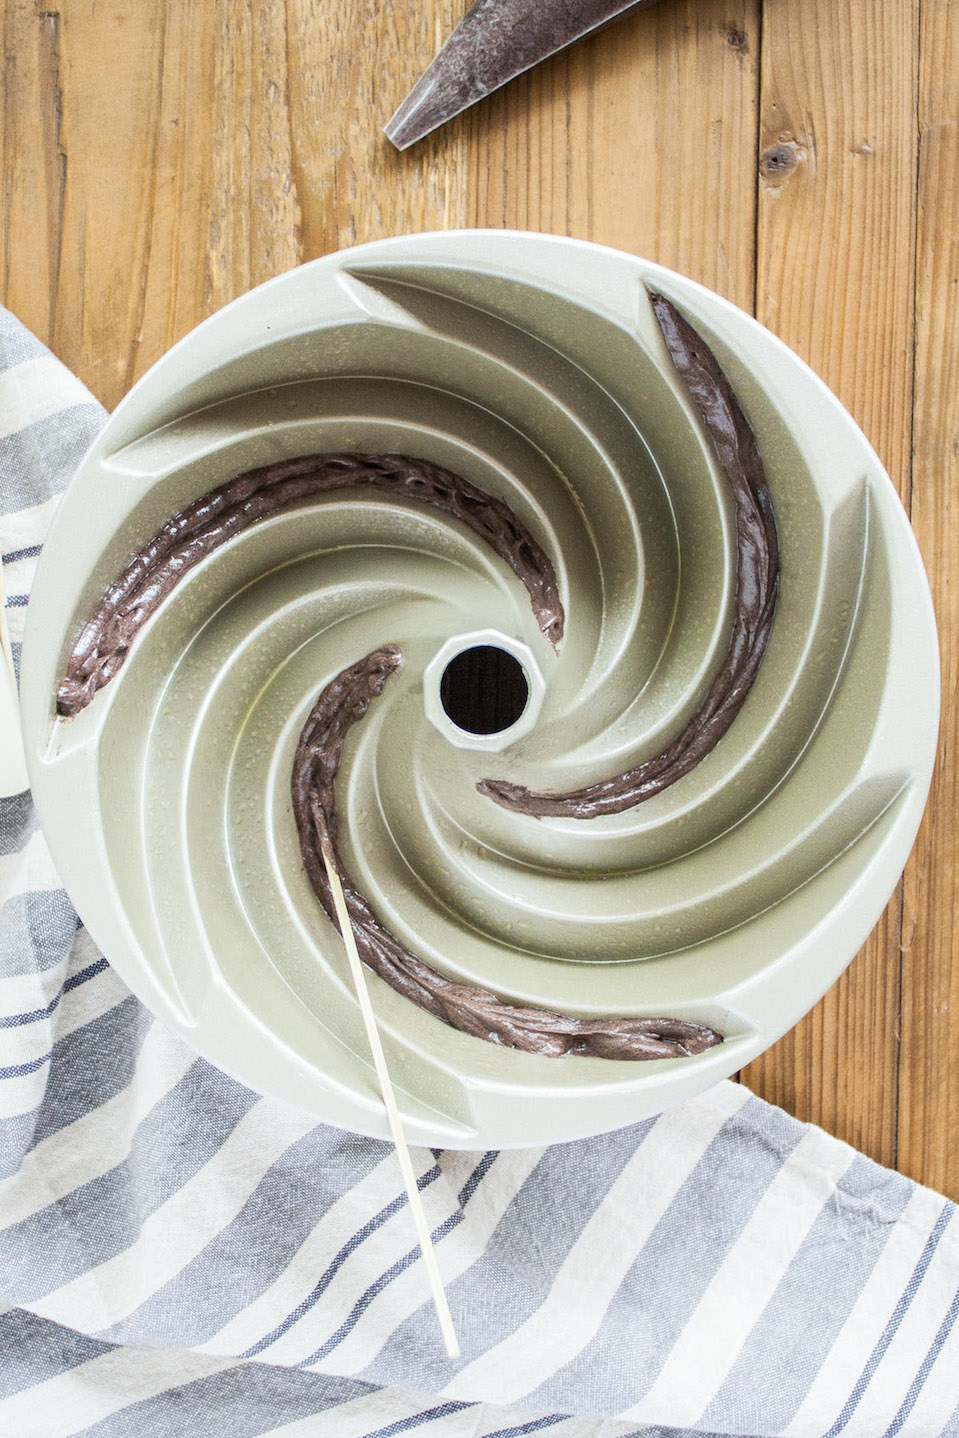 Learn how to do two-toned spirals in the Heritage bundt pan with this detailed tutorial.   livforcake.com